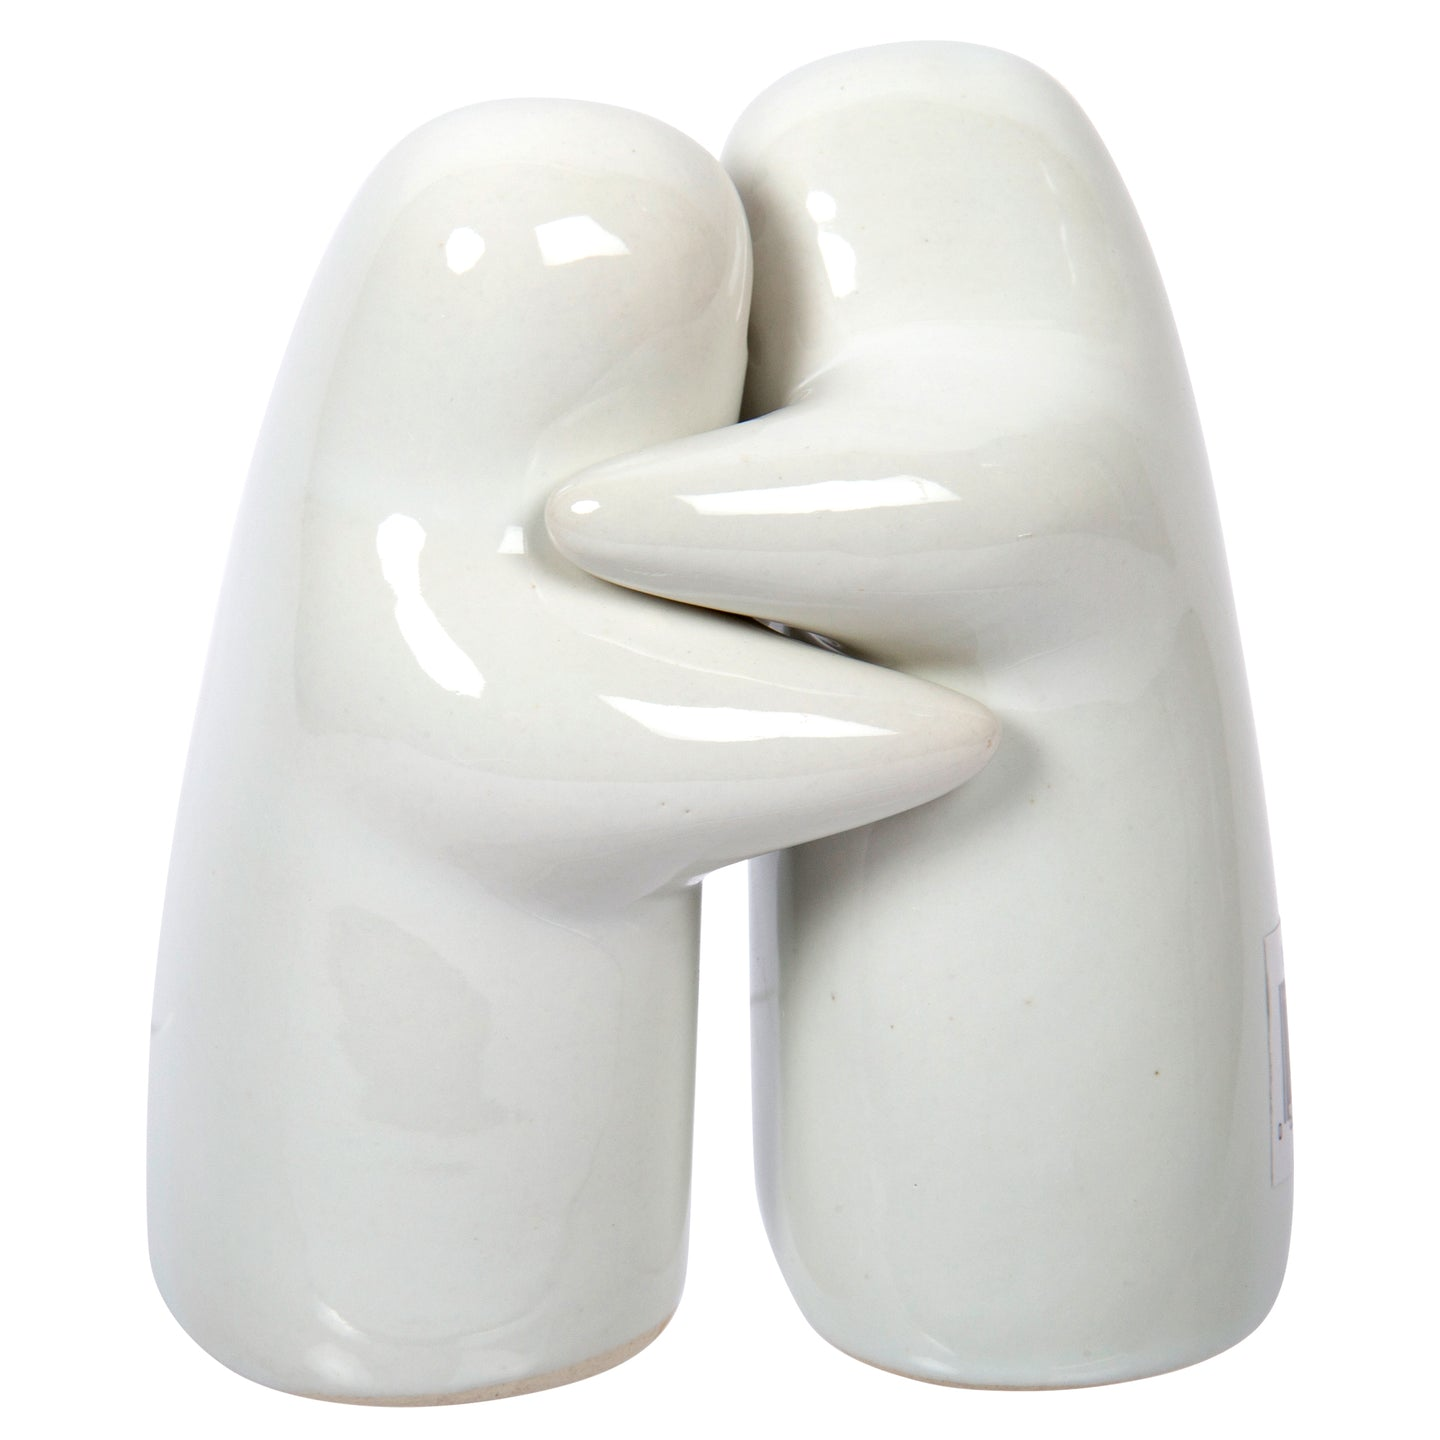 Salt & Pepper Shakers Hug